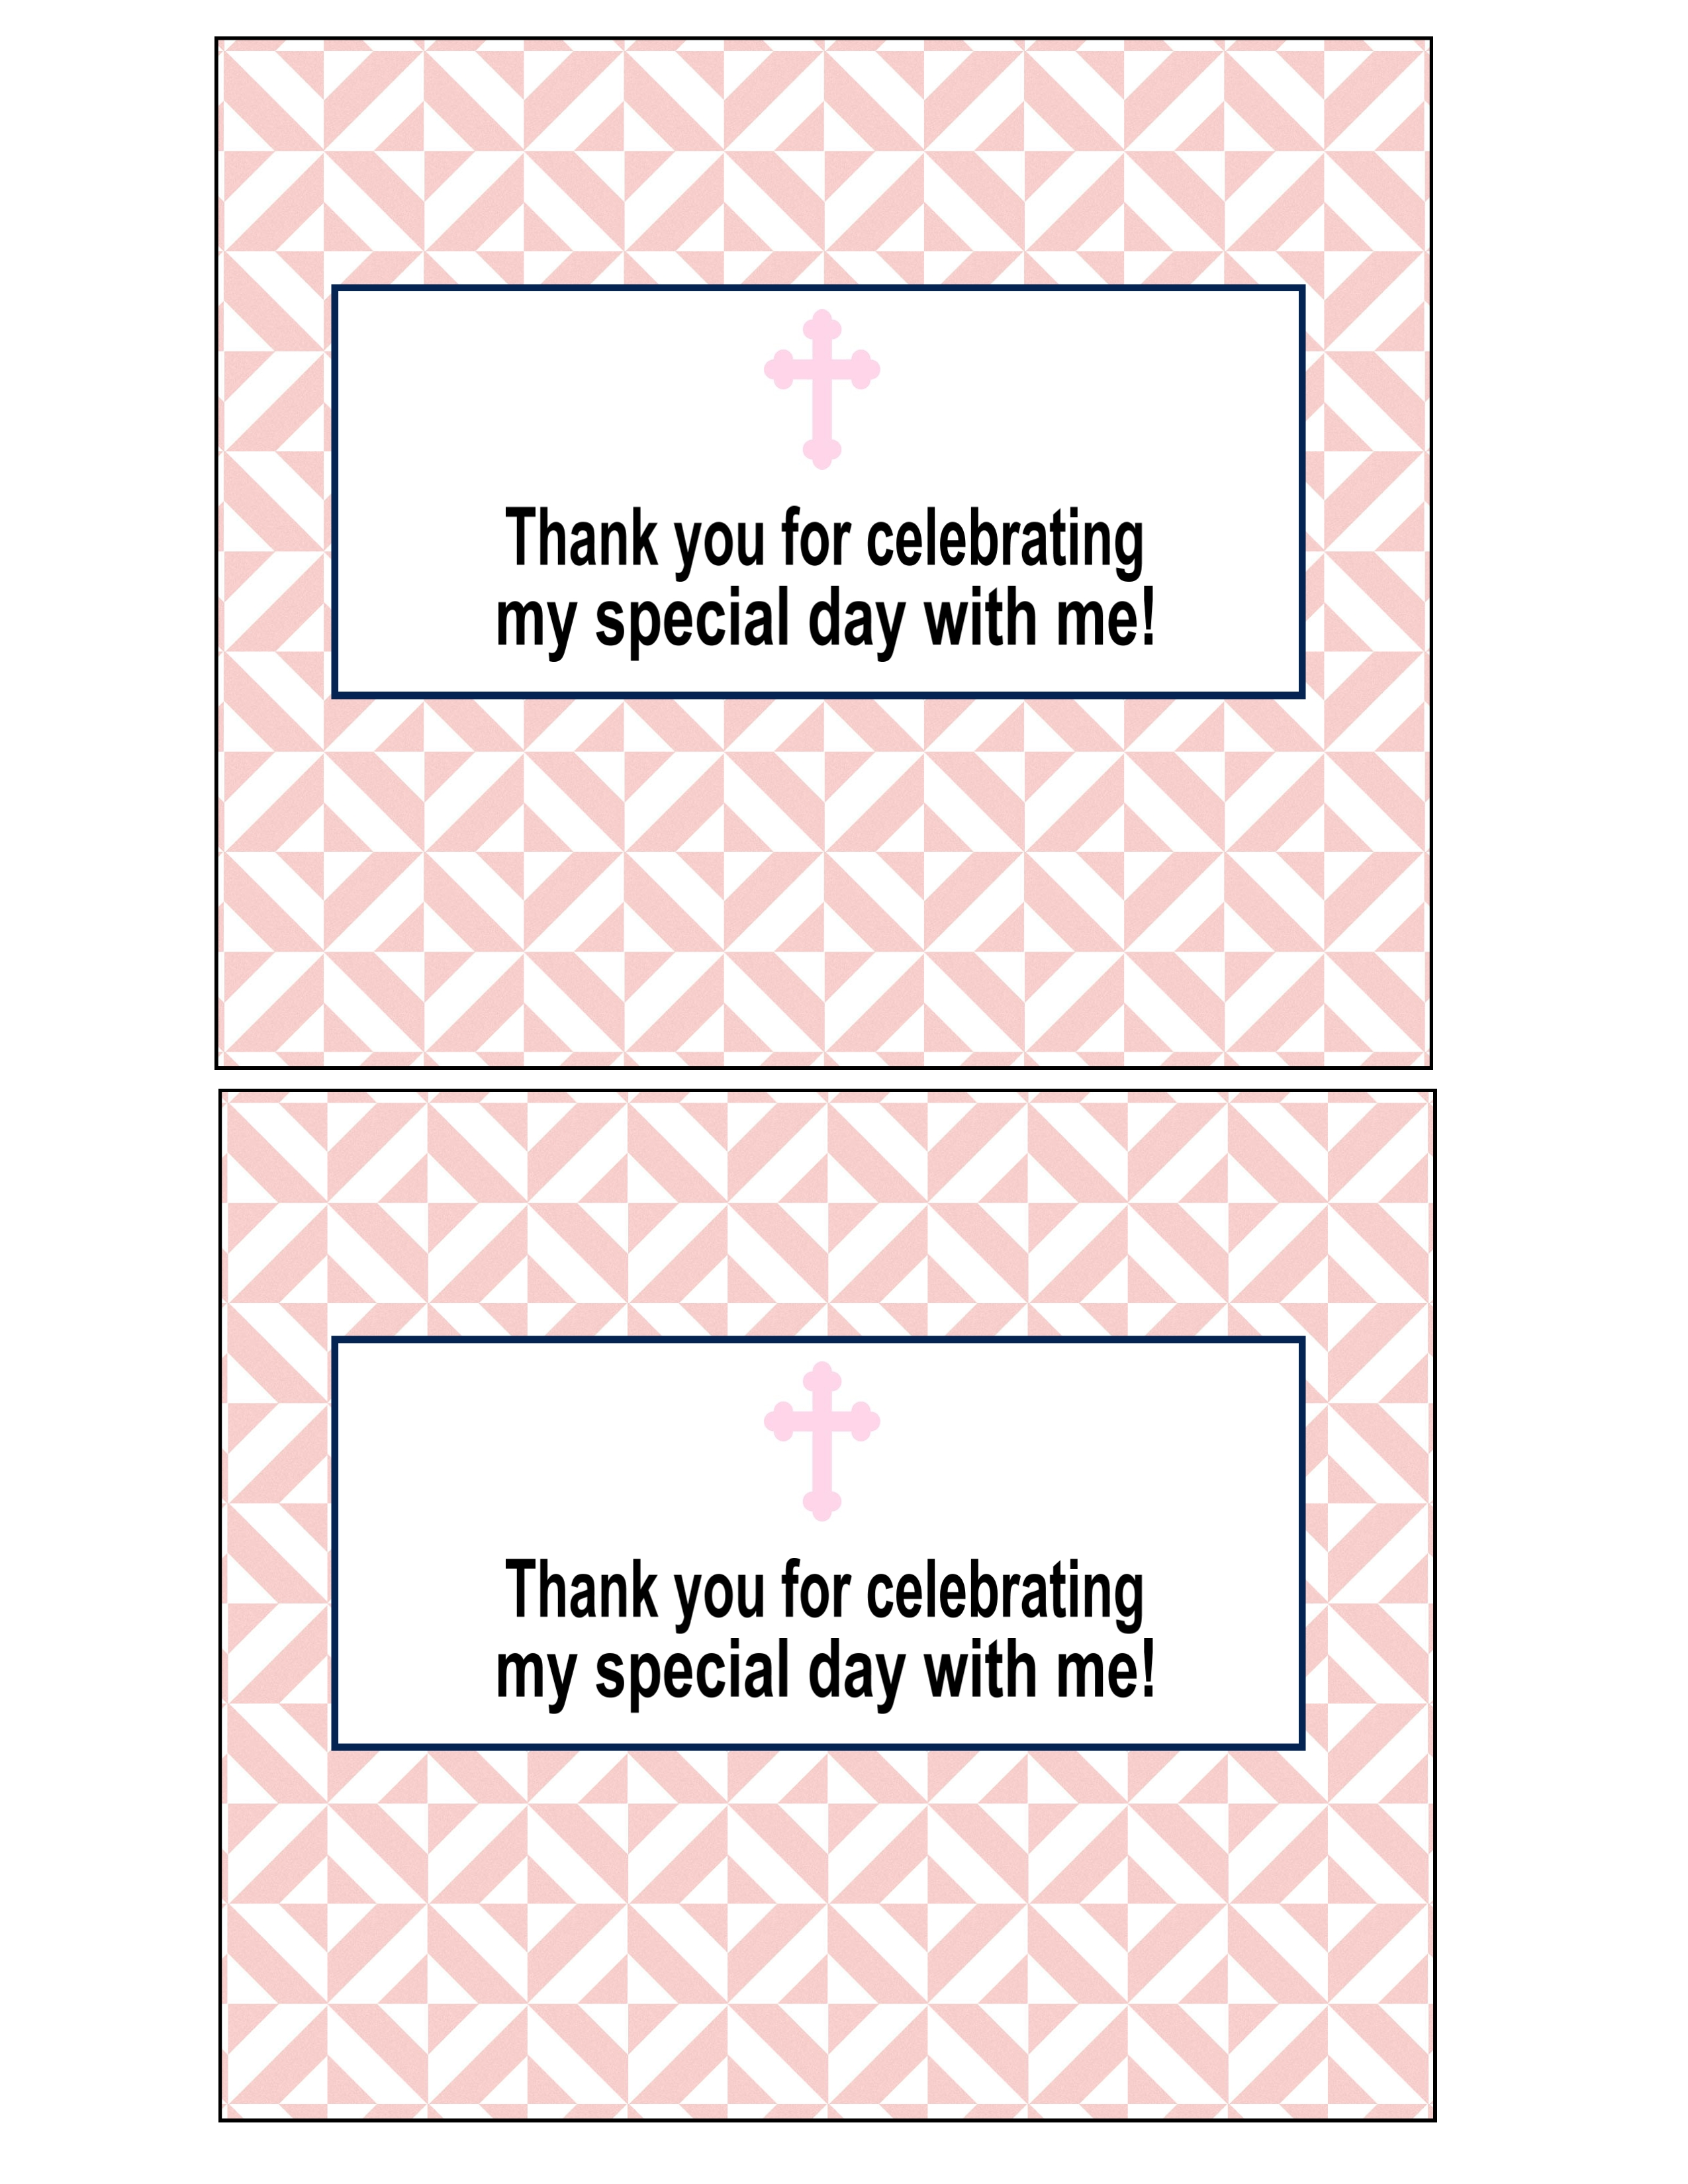 picture regarding Free Printable Hershey Bar Wrappers titled Initial Communion Sweet Bar Wrapper - Printables 4 Mother